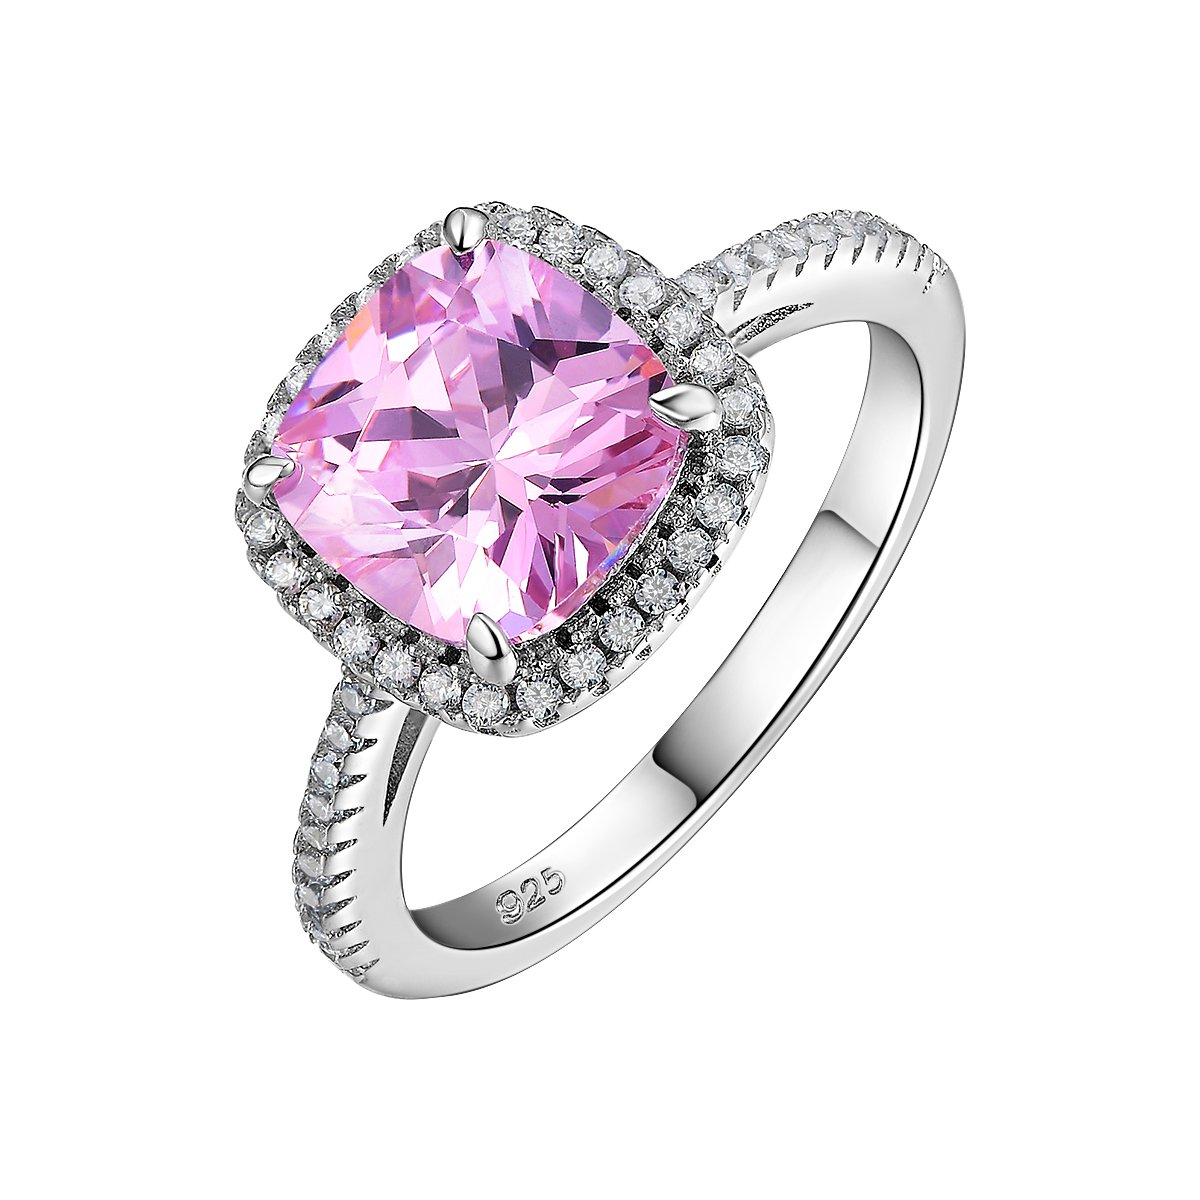 Newshe 2.13ct Cushion Created Pink Sapphire 925 Sterling Silver Gemstone Ring Anniversary Size 5